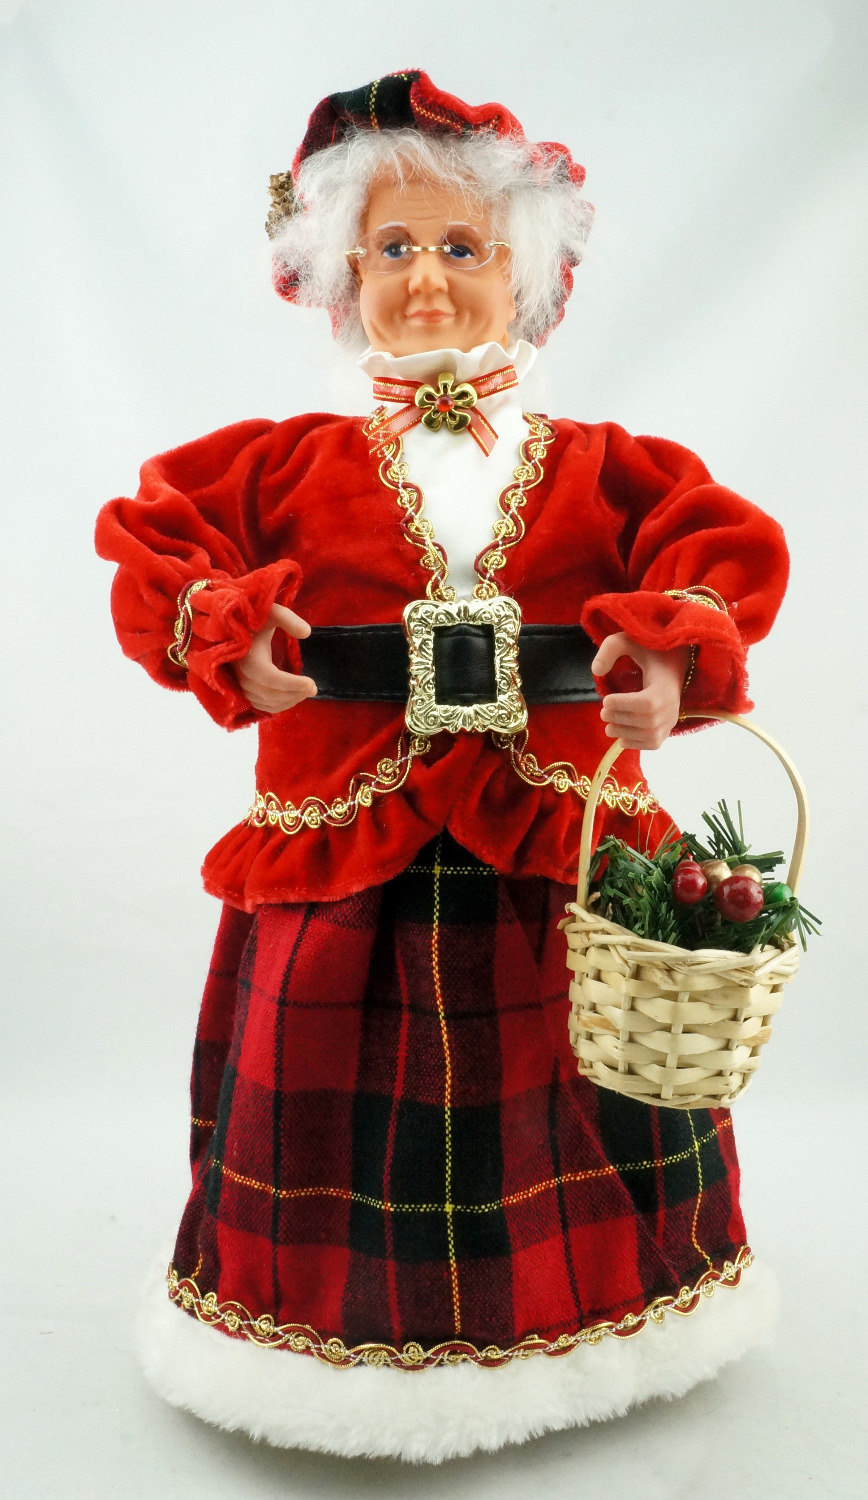 Cosette 18 New arrival Red Velvet Mrs Claus Christmas Decoration Glasses Basket Home Collection